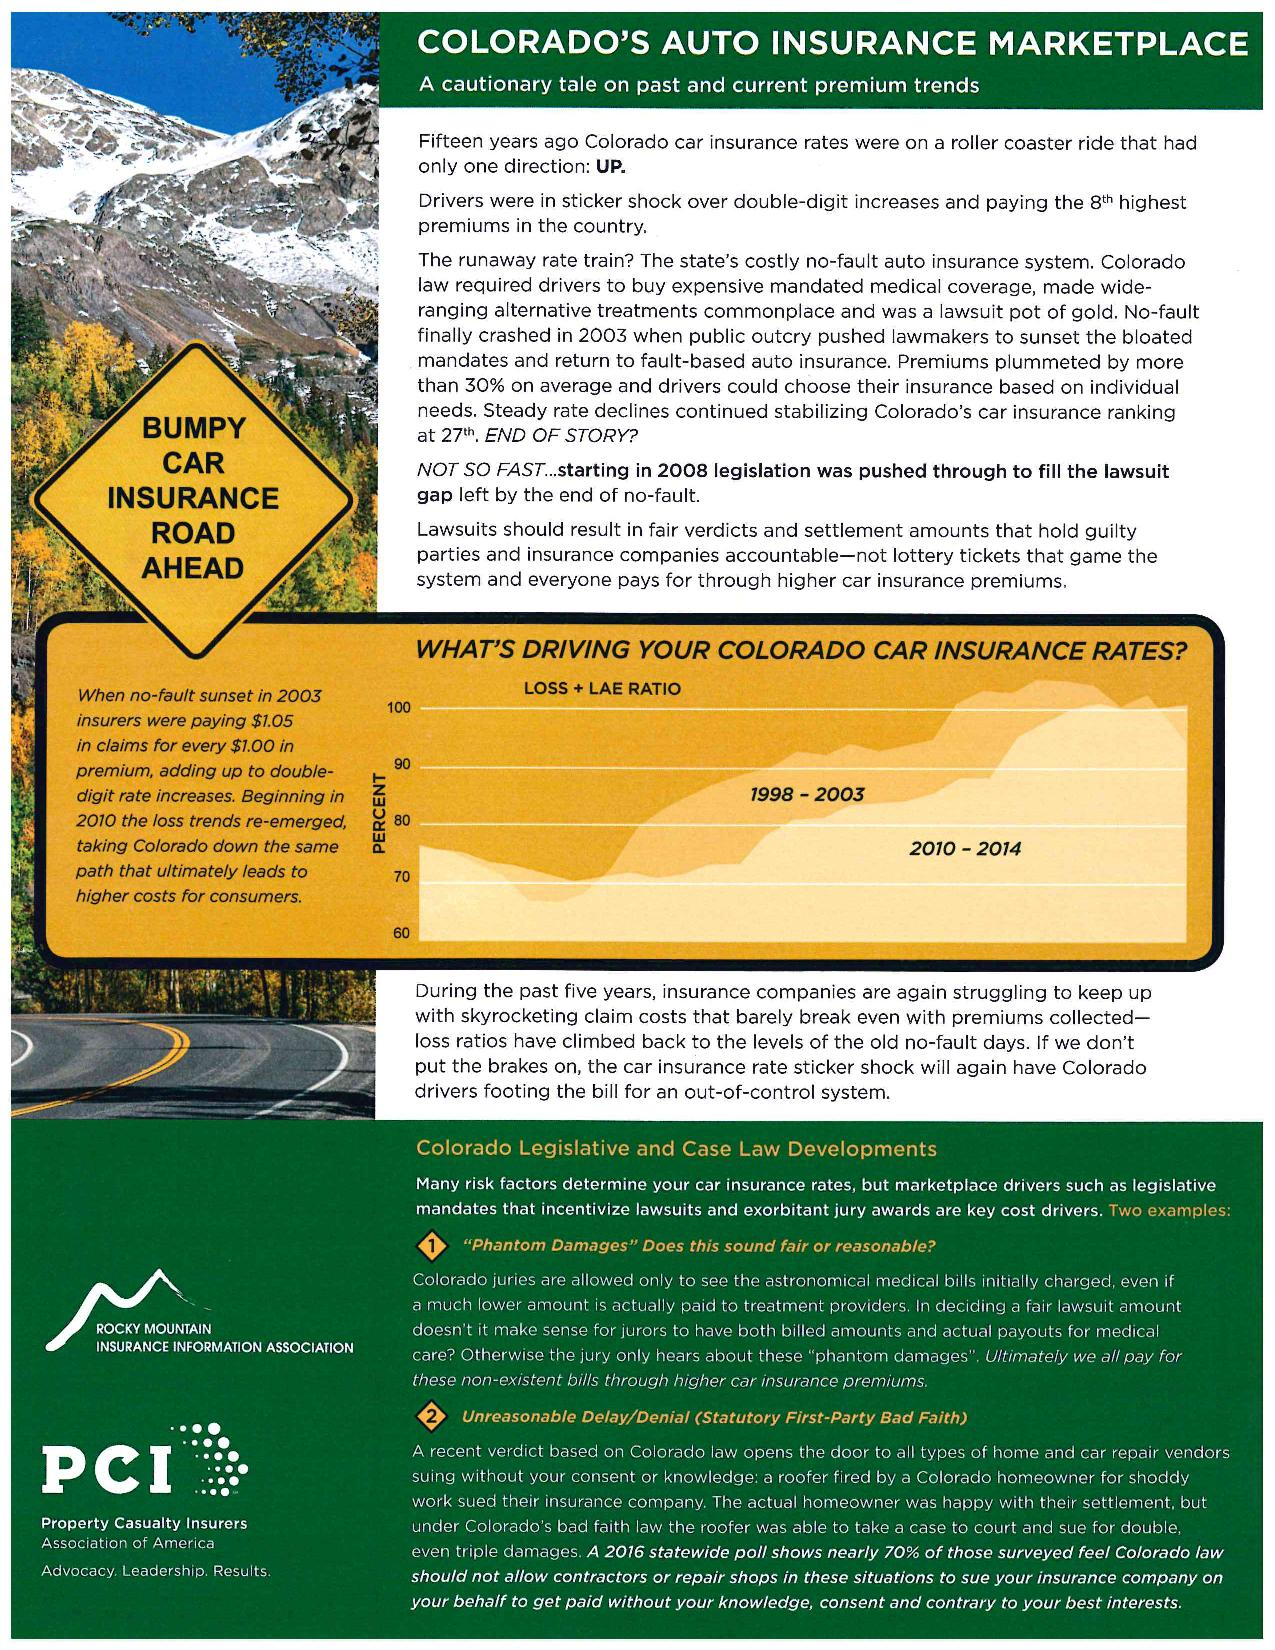 Colorado Auto Insurance Marketplace Flyer